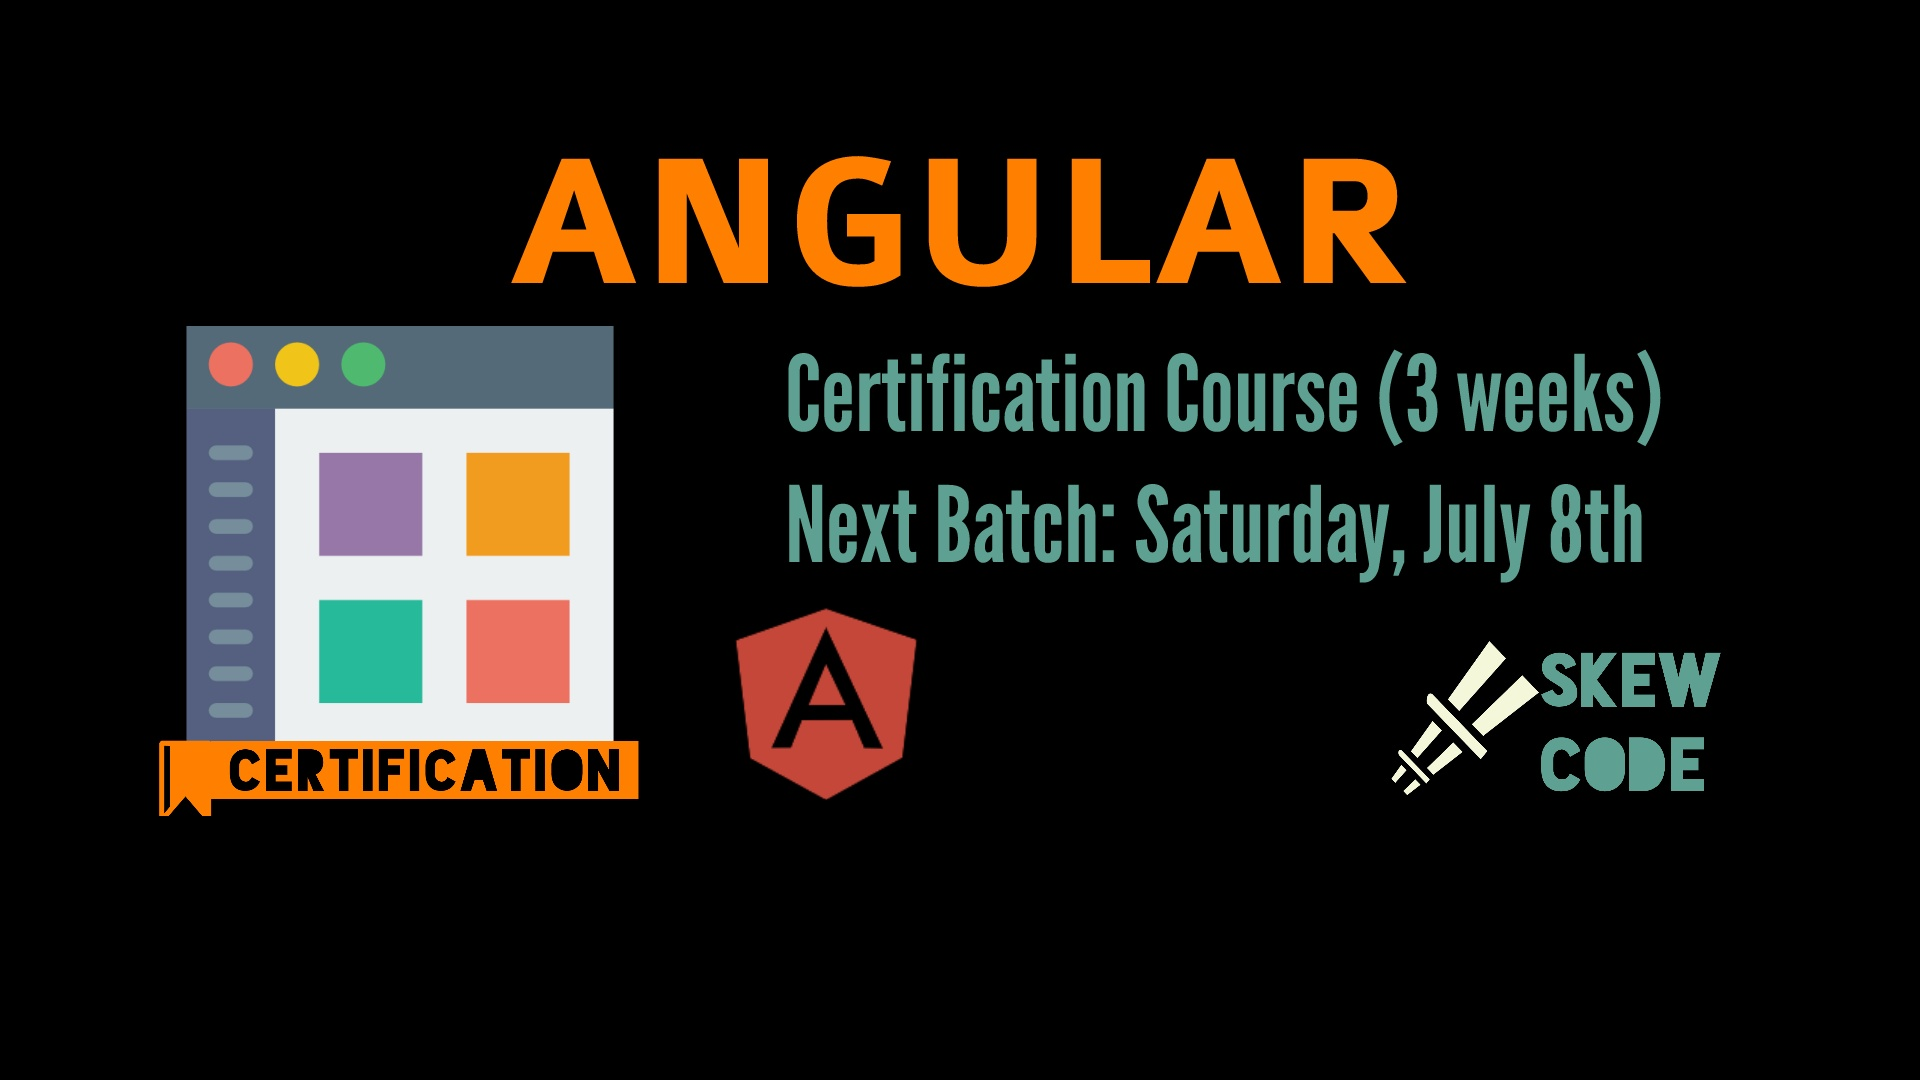 Book Certification Course In Angular 3 Weeks Tickets Bengaluru